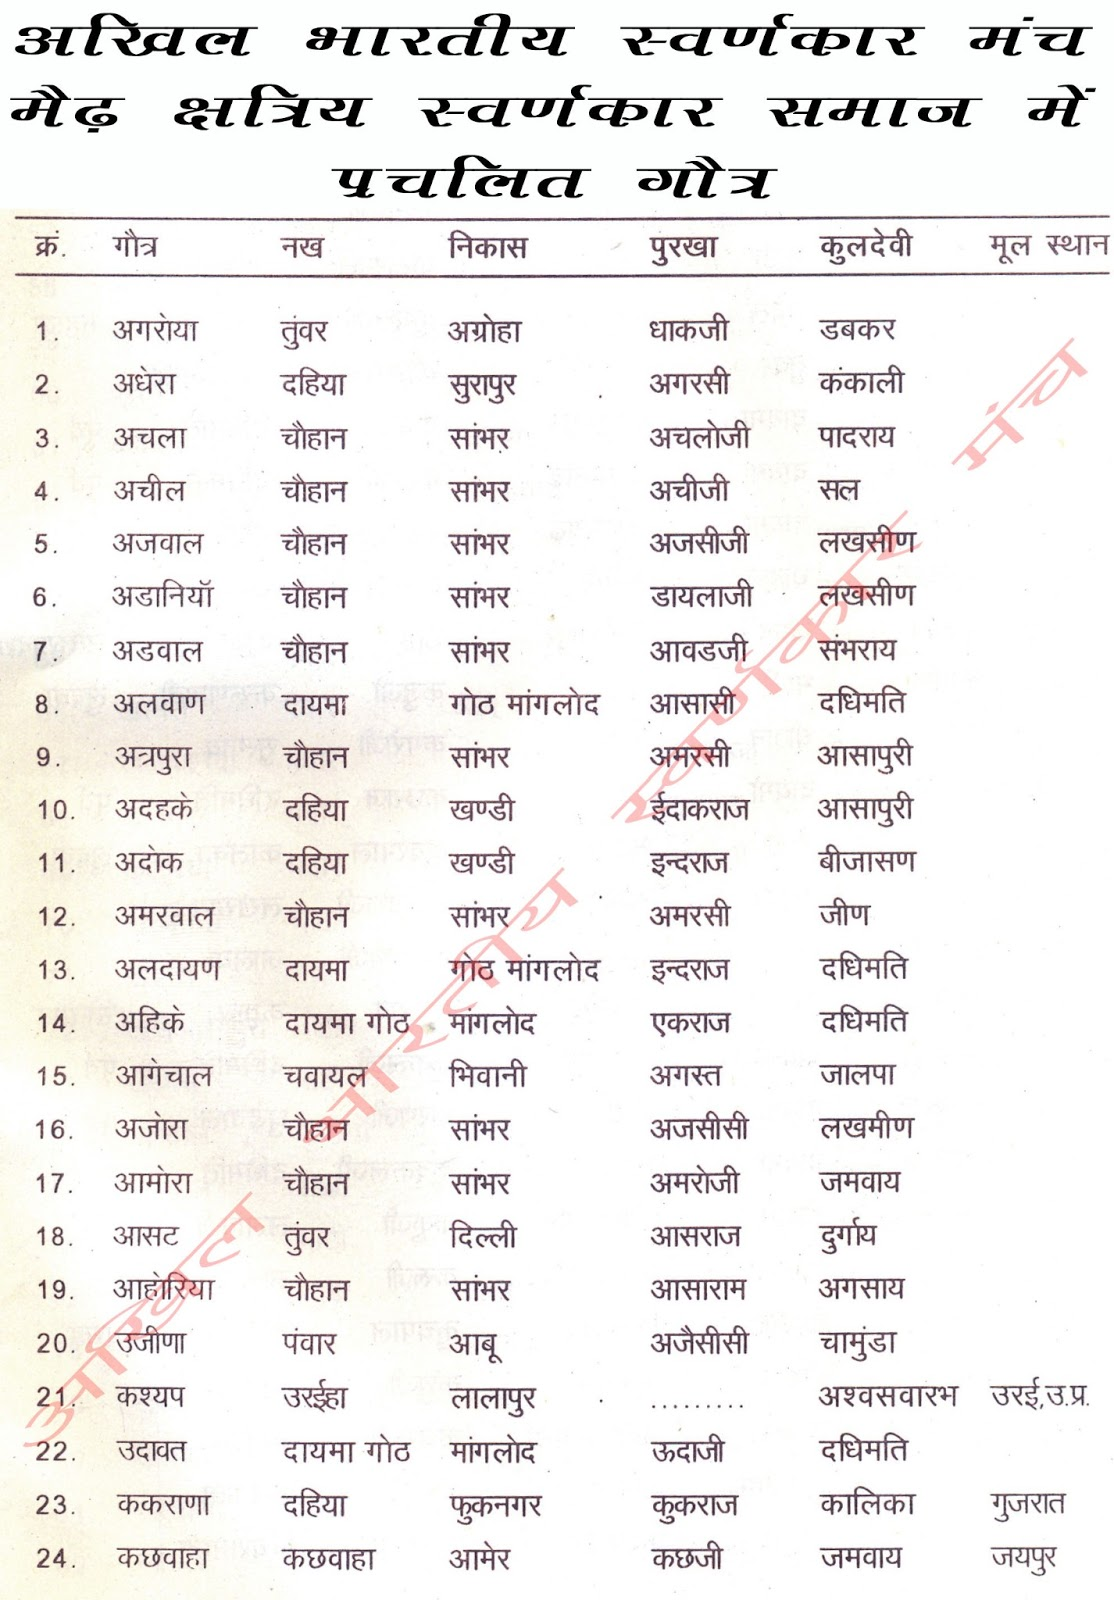 List Of Gotras